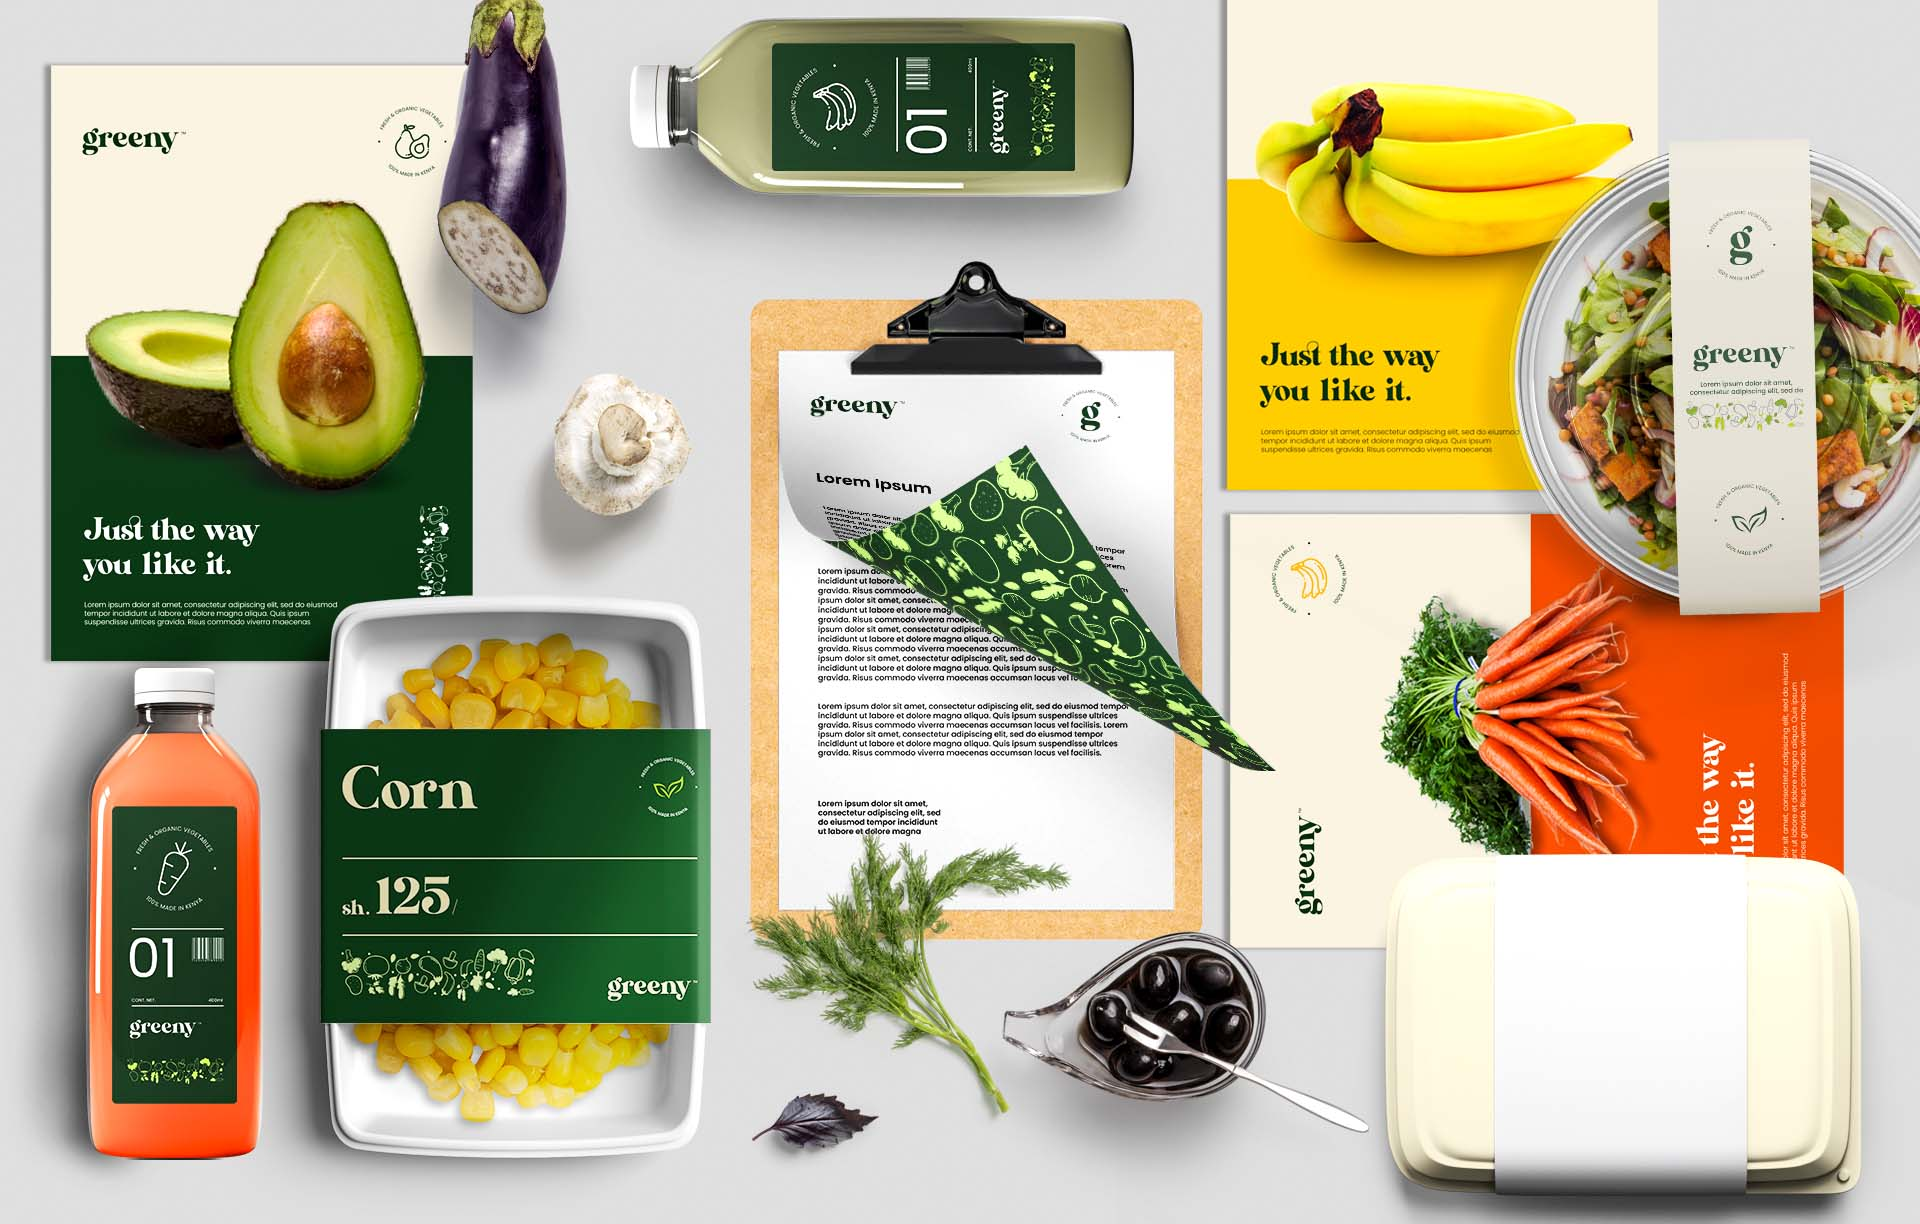 Greeny stationery and product branding